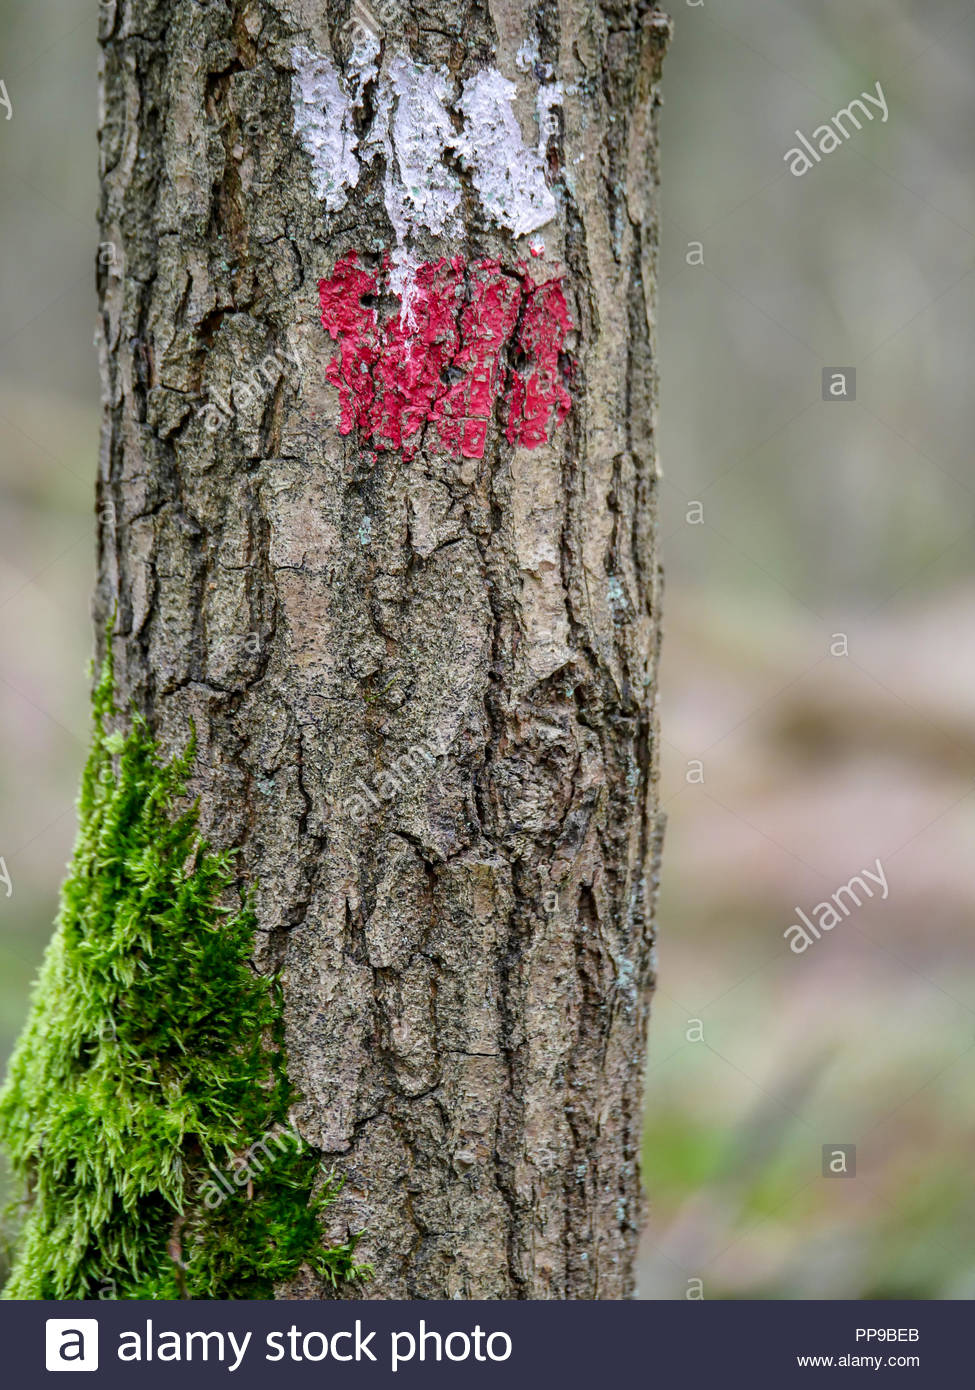 Tree with a red and white marking indicating the correct direction of the long distance walking path in Europe. Moss grows on the side of the tree. - Stock Image